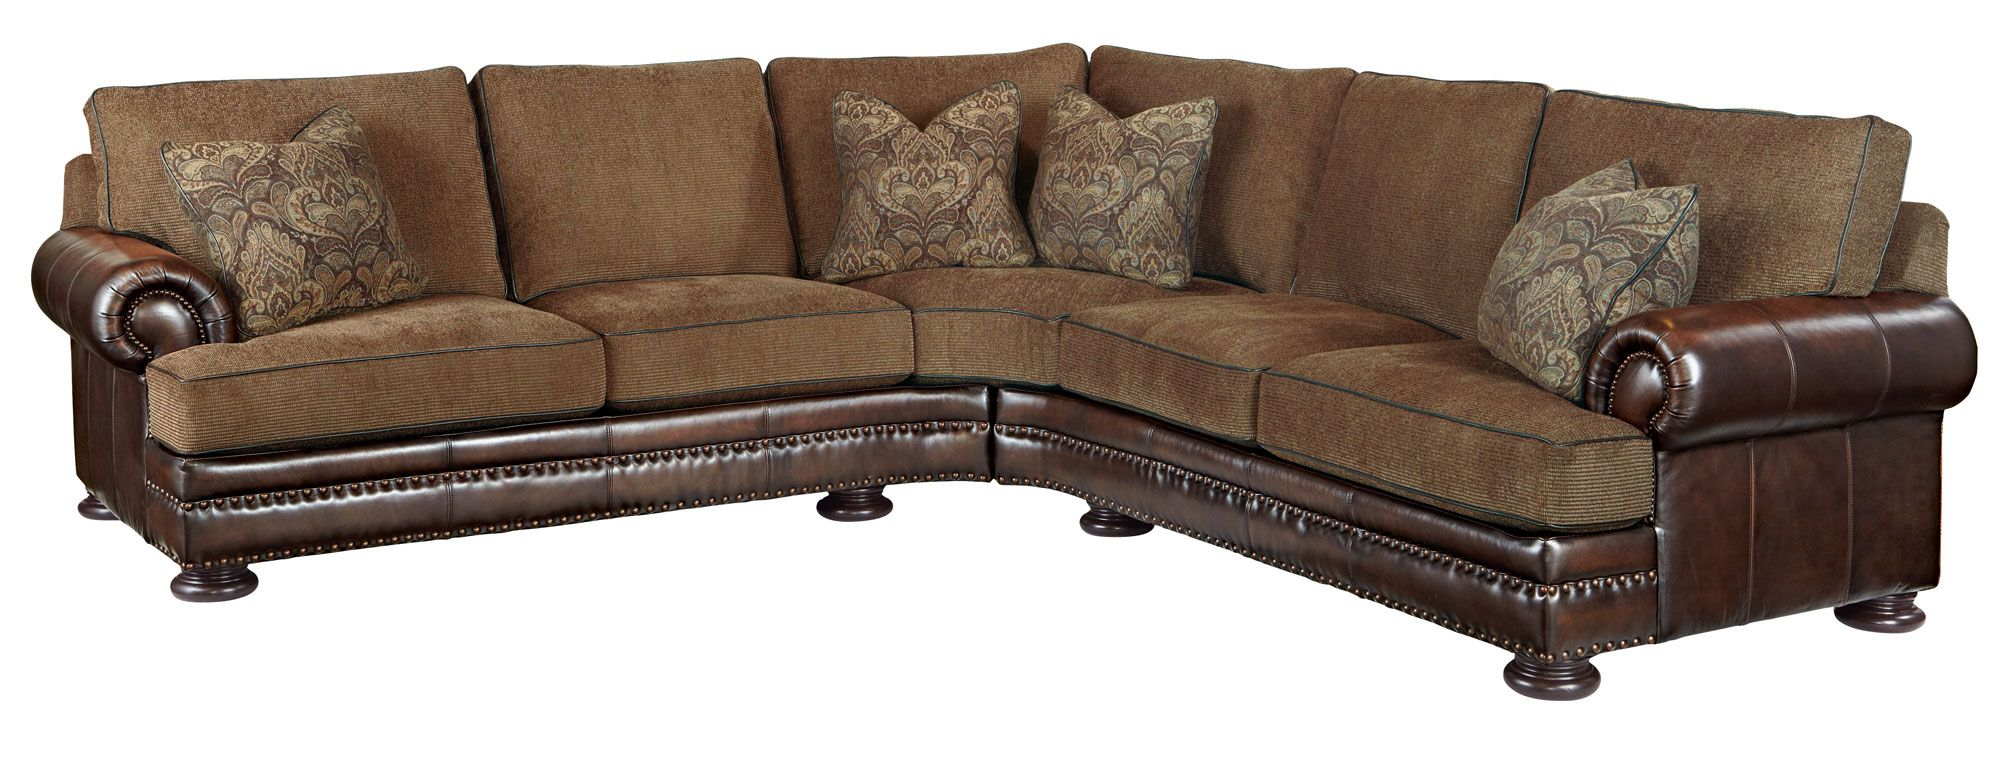 Bernhardt Foster Fabric Leather Sectional Group 5192lco 5191lco